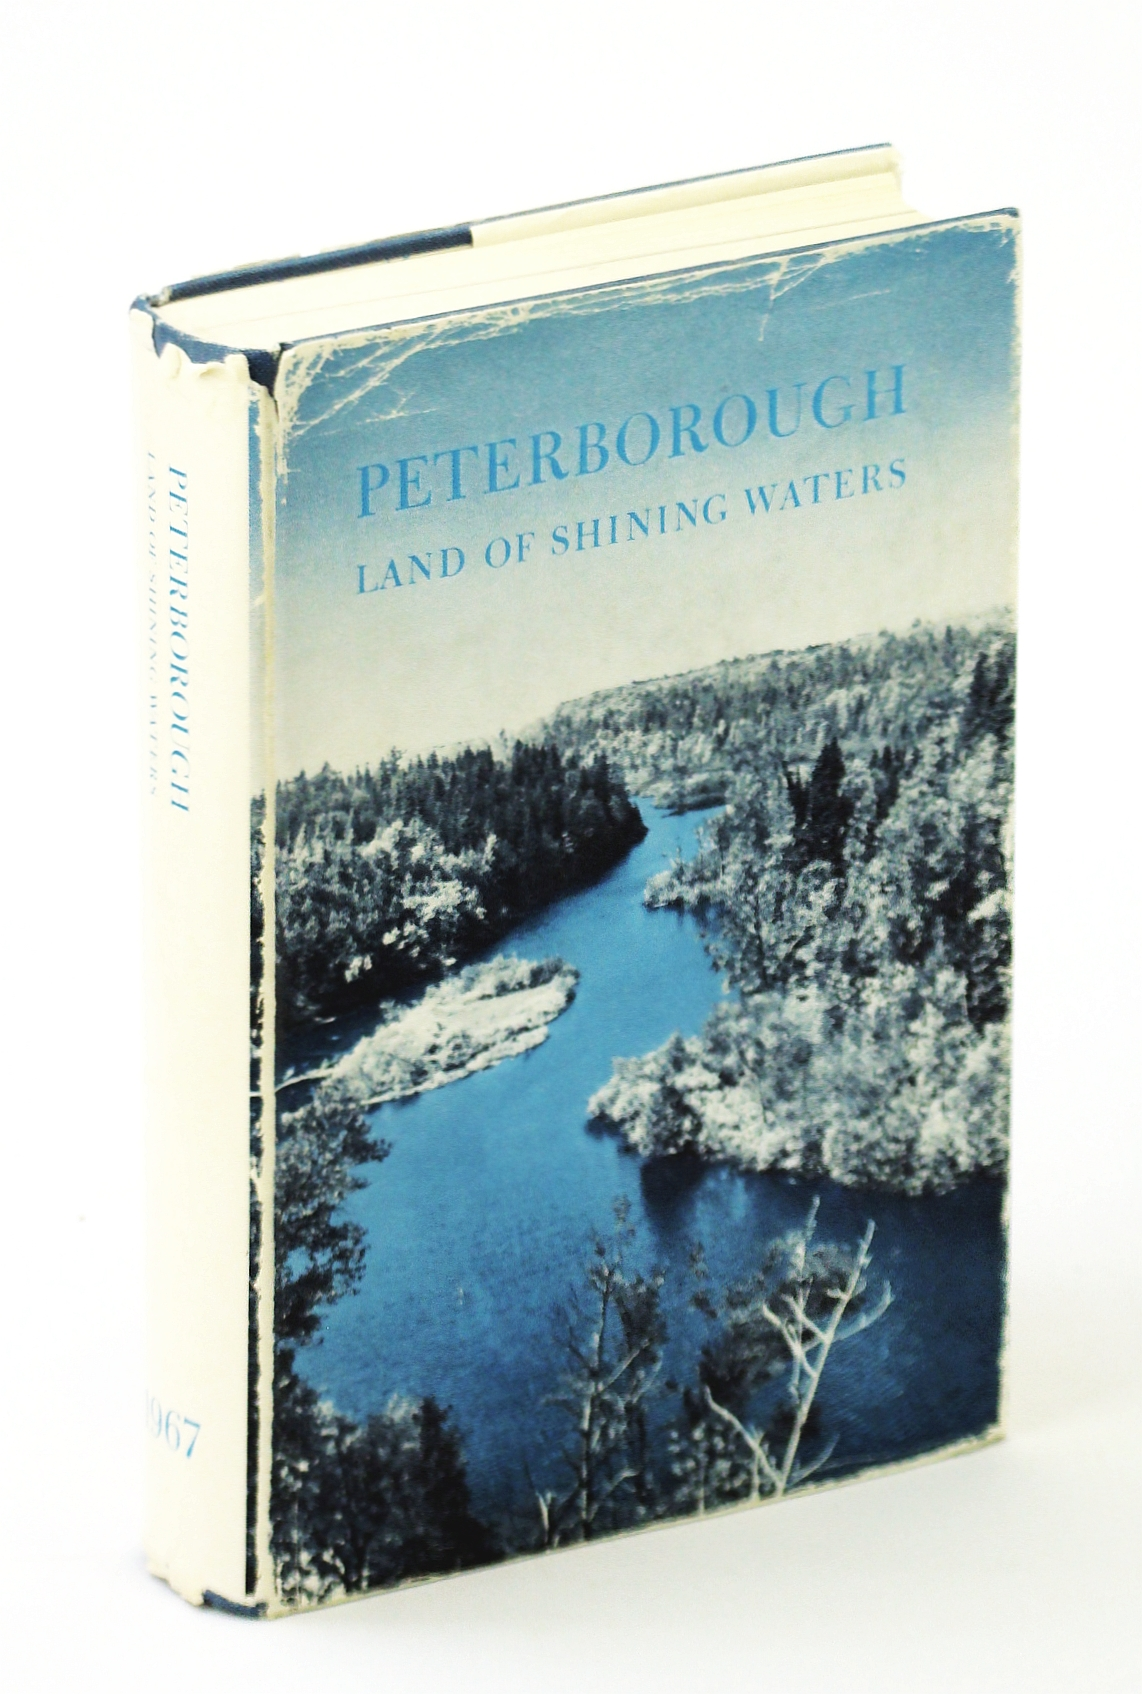 Image for PETERBOROUGH Land of Shining Waters - An Anthology. A Centennial Volume